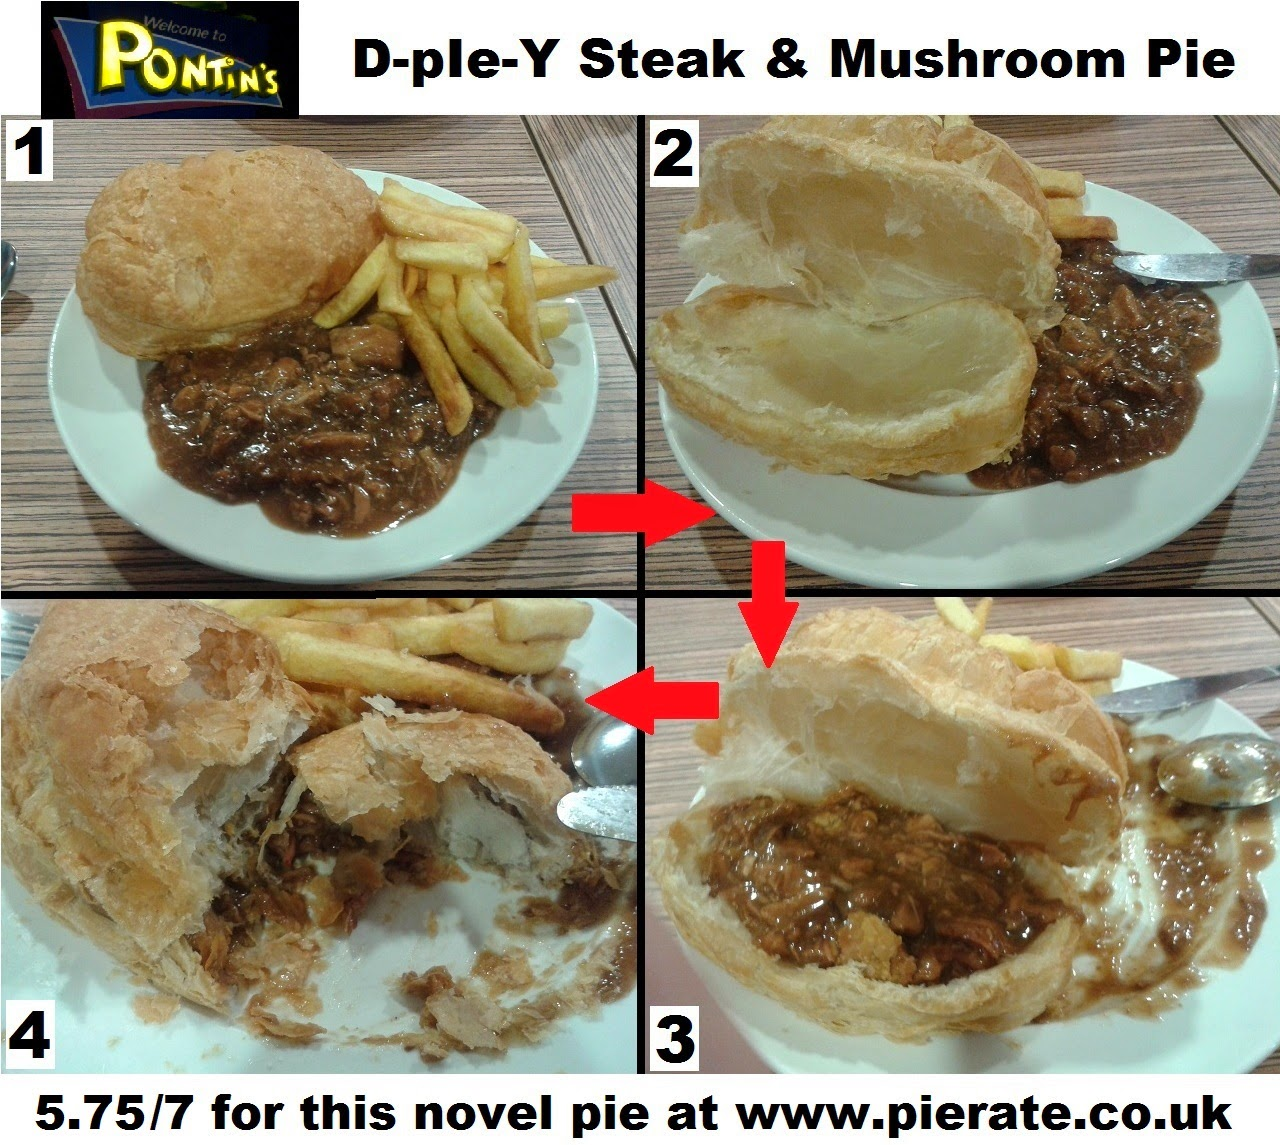 Pontins Steak Pie Review